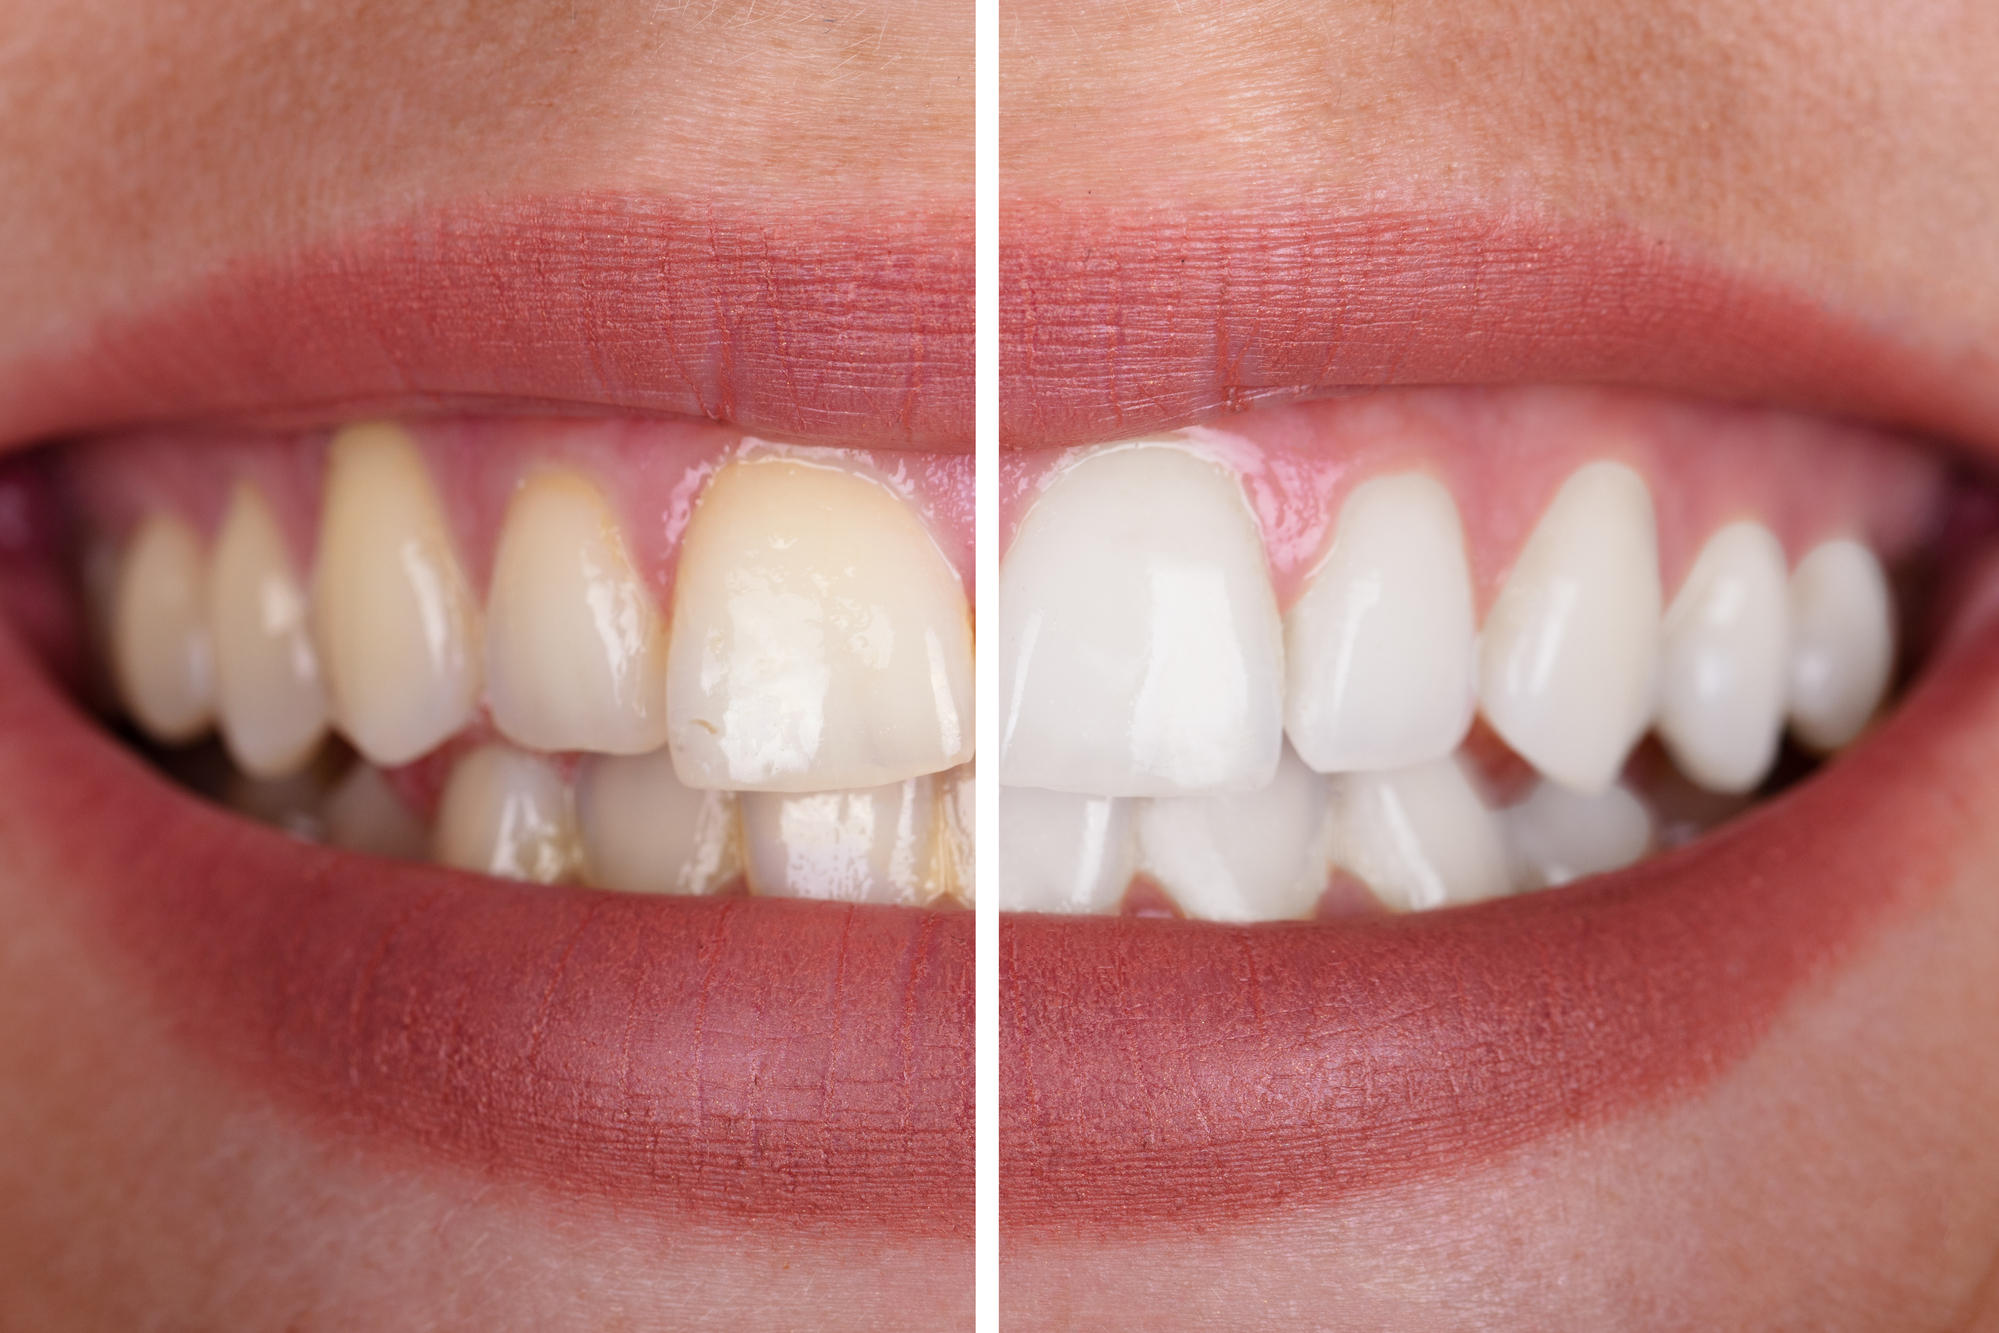 What's the best type of teeth whitening?